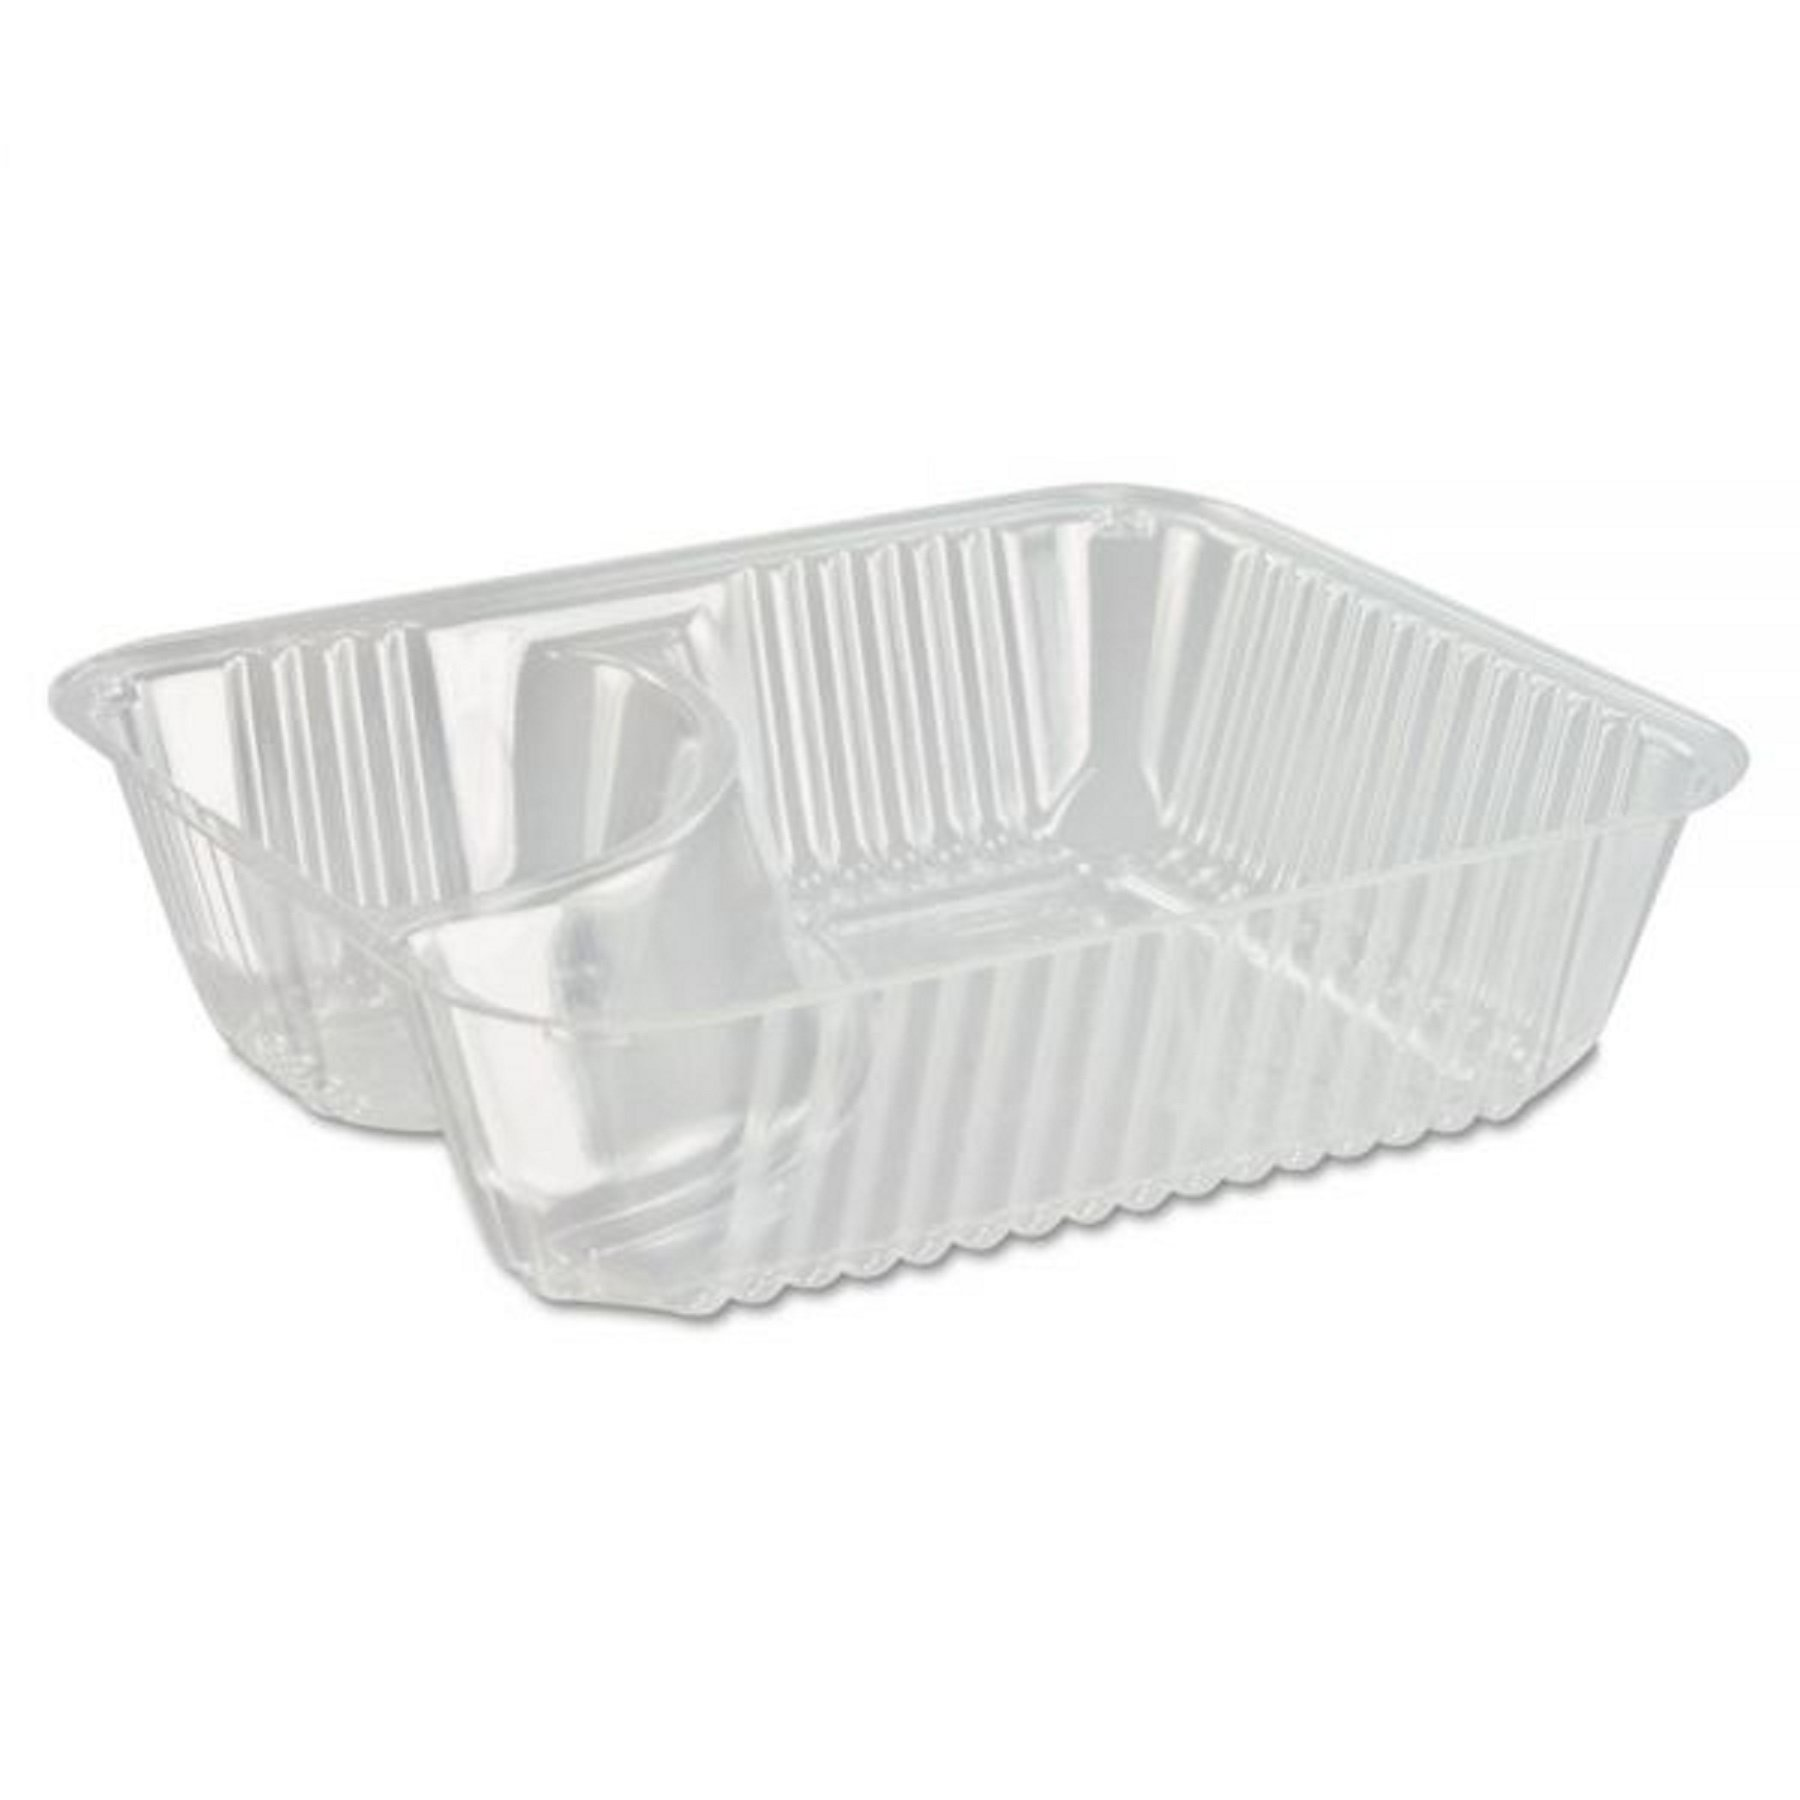 Made in USA - Small Nacho Trays 6 x 5 x 1-1/2 inch; Perfect size for personal-size nachos or any snacks with a dip(50)